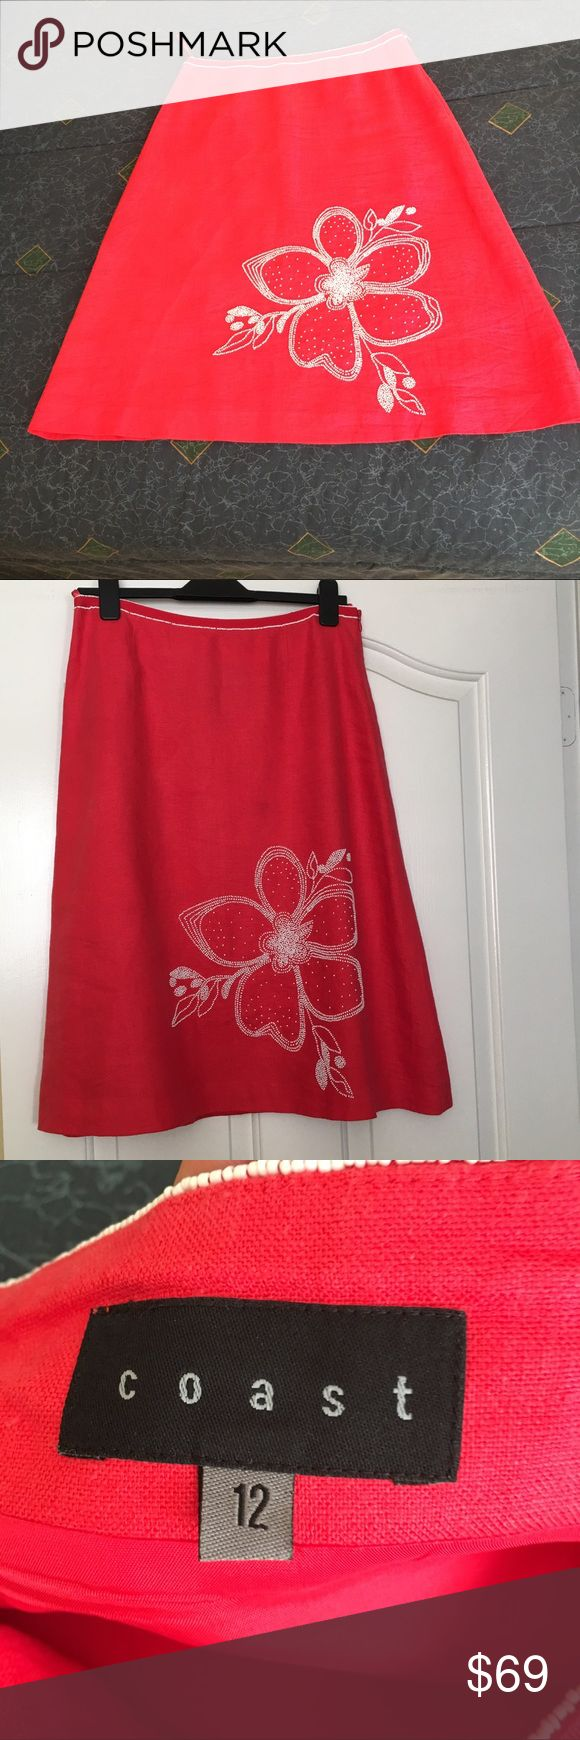 """British Coast 100% linen beaded skirt This is a gorgeous A-line skirt by the British fashion brand """"Coast"""". It is bright red in color, 100% linen and lined inside. There is a hand-sawn beaded flower on its left side. There are 2 rows of beading on the waist. It is a size 12 U.K. (size 8 US). It will fit someone with a 30 inch waist. Purchase for $380. Unfortunately too small for me now. There is a tiny stain 5 inches below the waistline (please see the last photo) barely noticeable when…"""